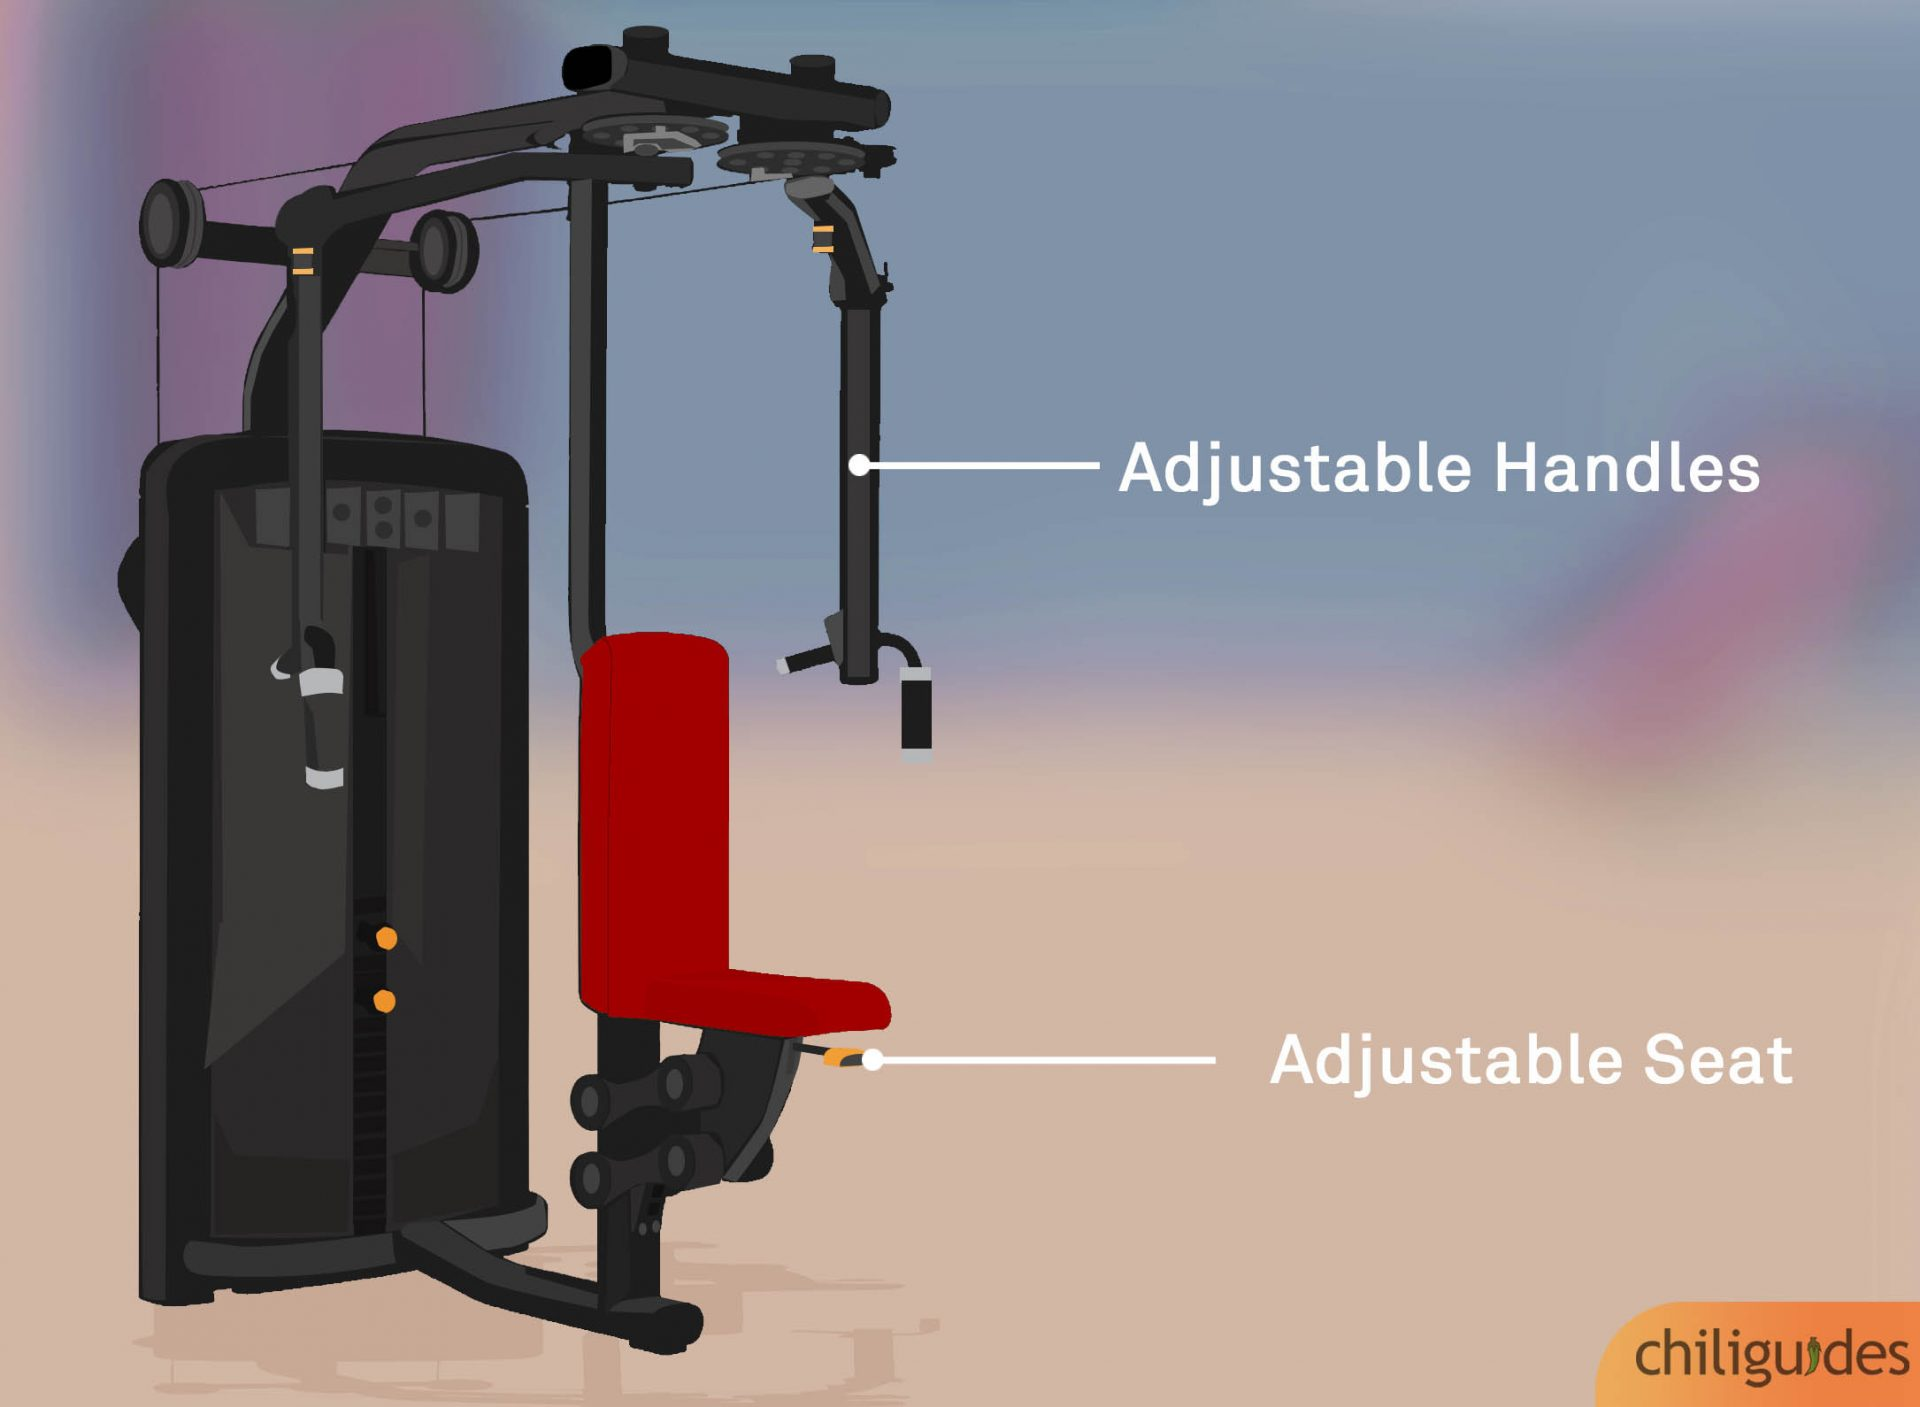 The seat and handles must be adjustable.